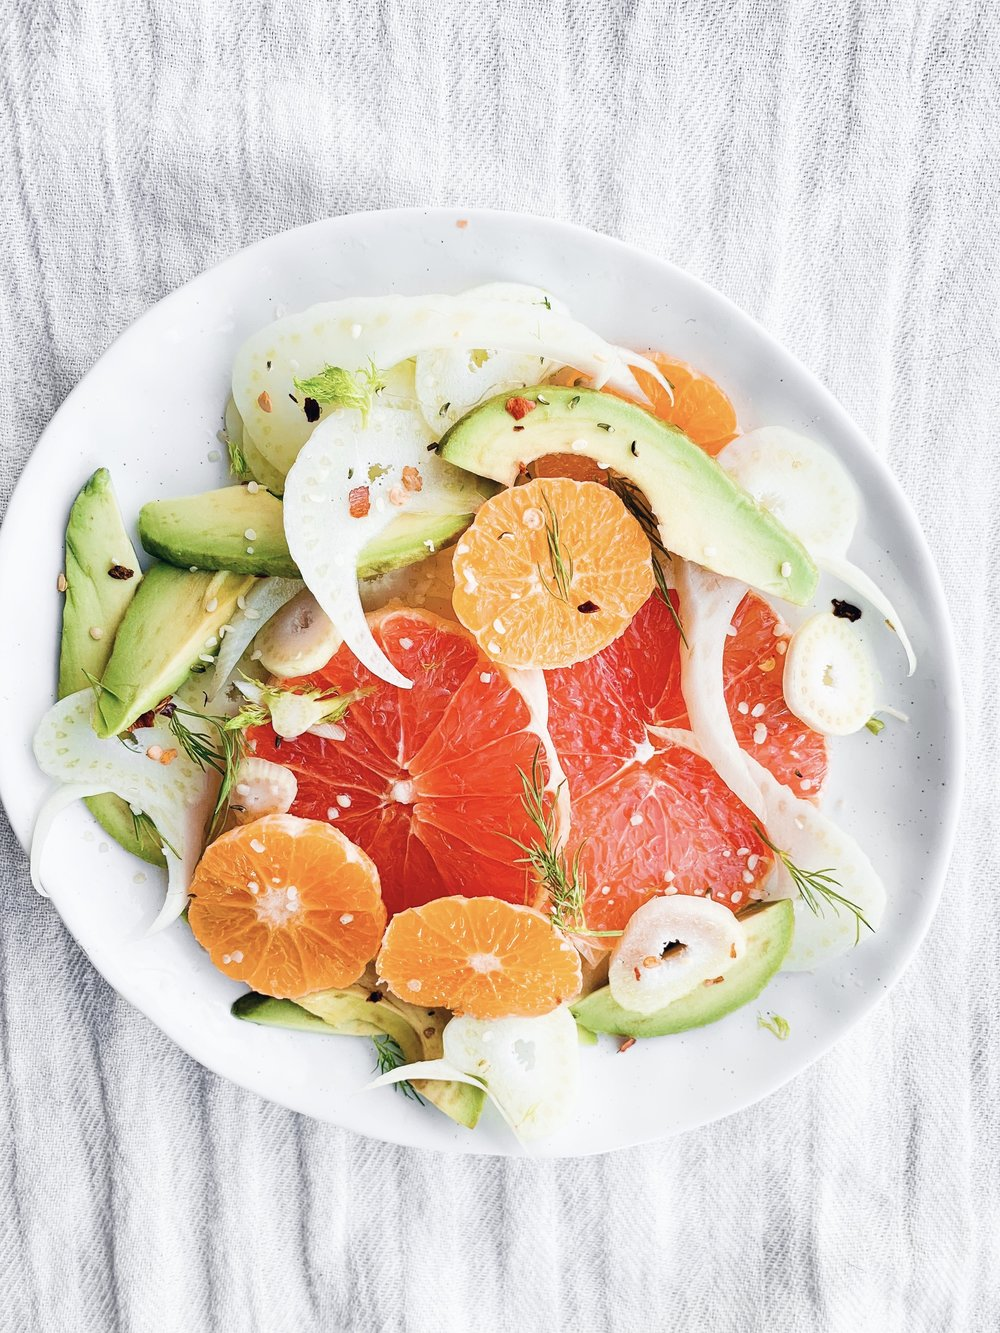 Sunshiney Avocado, Fennel and Grapefruit Salad - the perfect energizing, refreshing, seasonal salad to enjoy in the winter time (but really it's good anytime!)! Foody First Beth Bierema - #vegan #plantbased #raw #glutenfree #whole30 #paleo #citrus #fennel #avocado